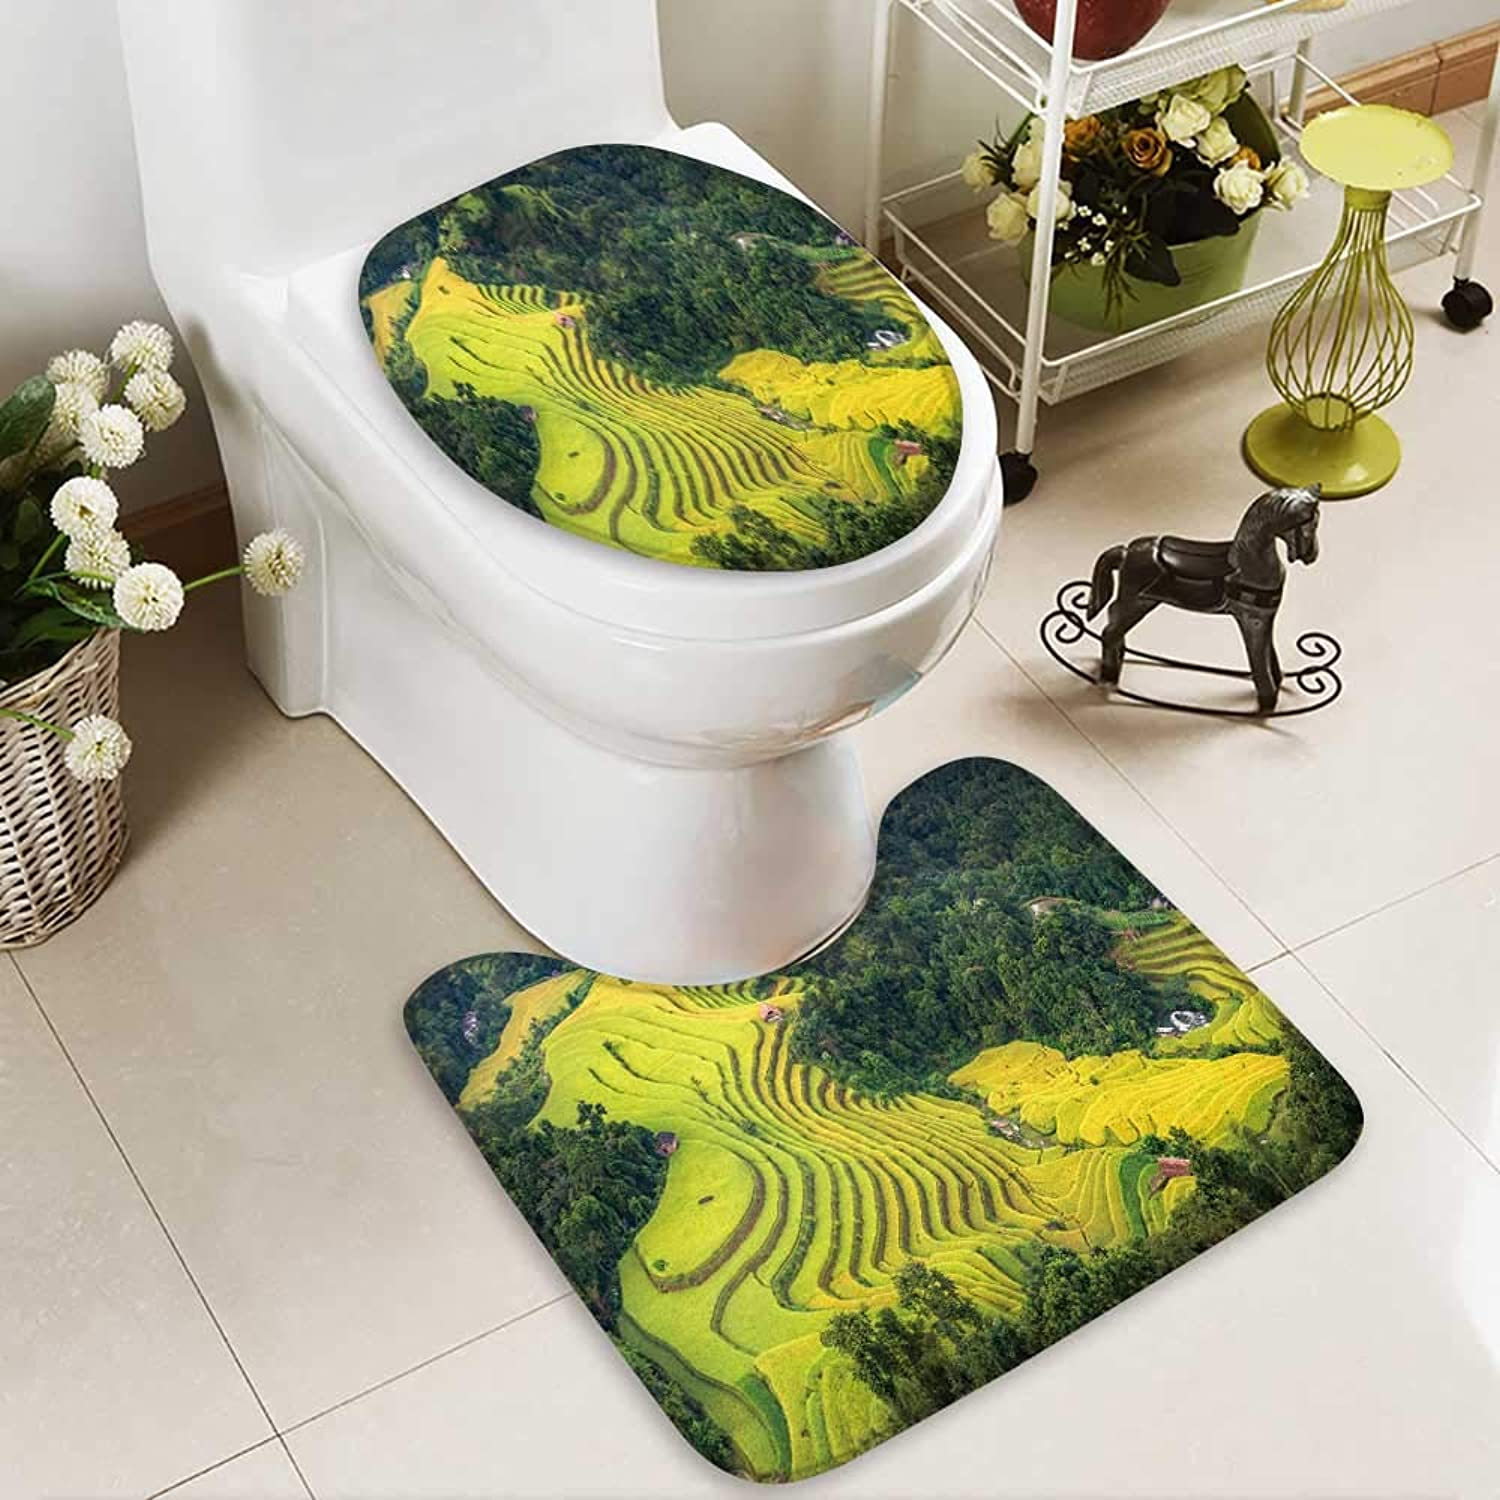 Bathroom Non-Slip Floor Mat Rice Fields on terraced Hoang su phi Country ha Giang High Absorbency